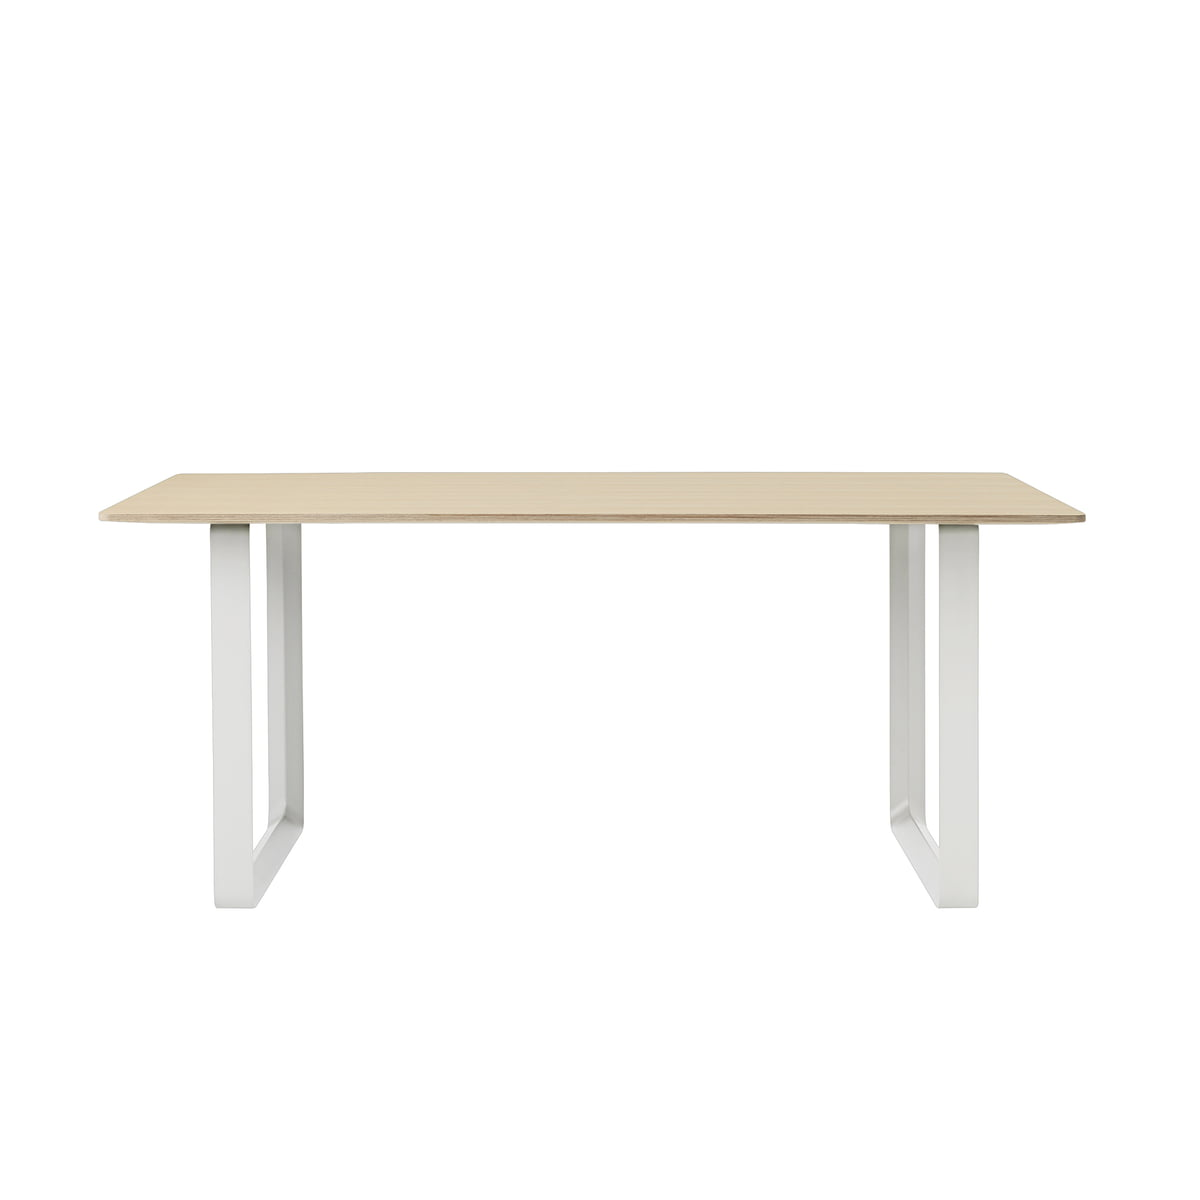 70 70 dining table 170 x 85 cm by muuto connox. Black Bedroom Furniture Sets. Home Design Ideas